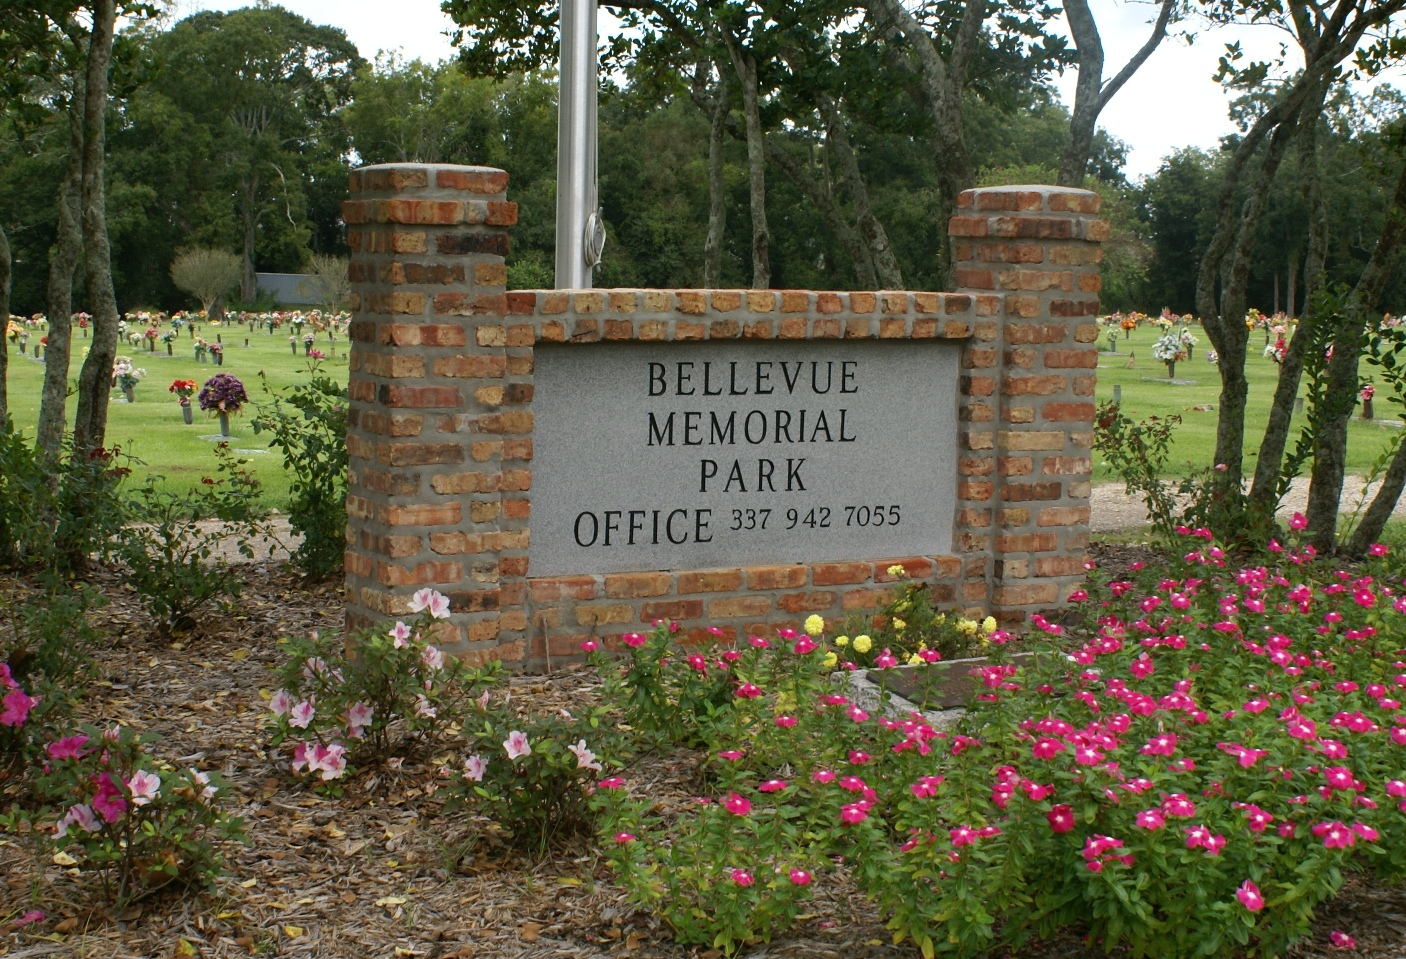 Bellevue Memorial Park in Opelousas, Louisiana - Find A Grave Cemetery